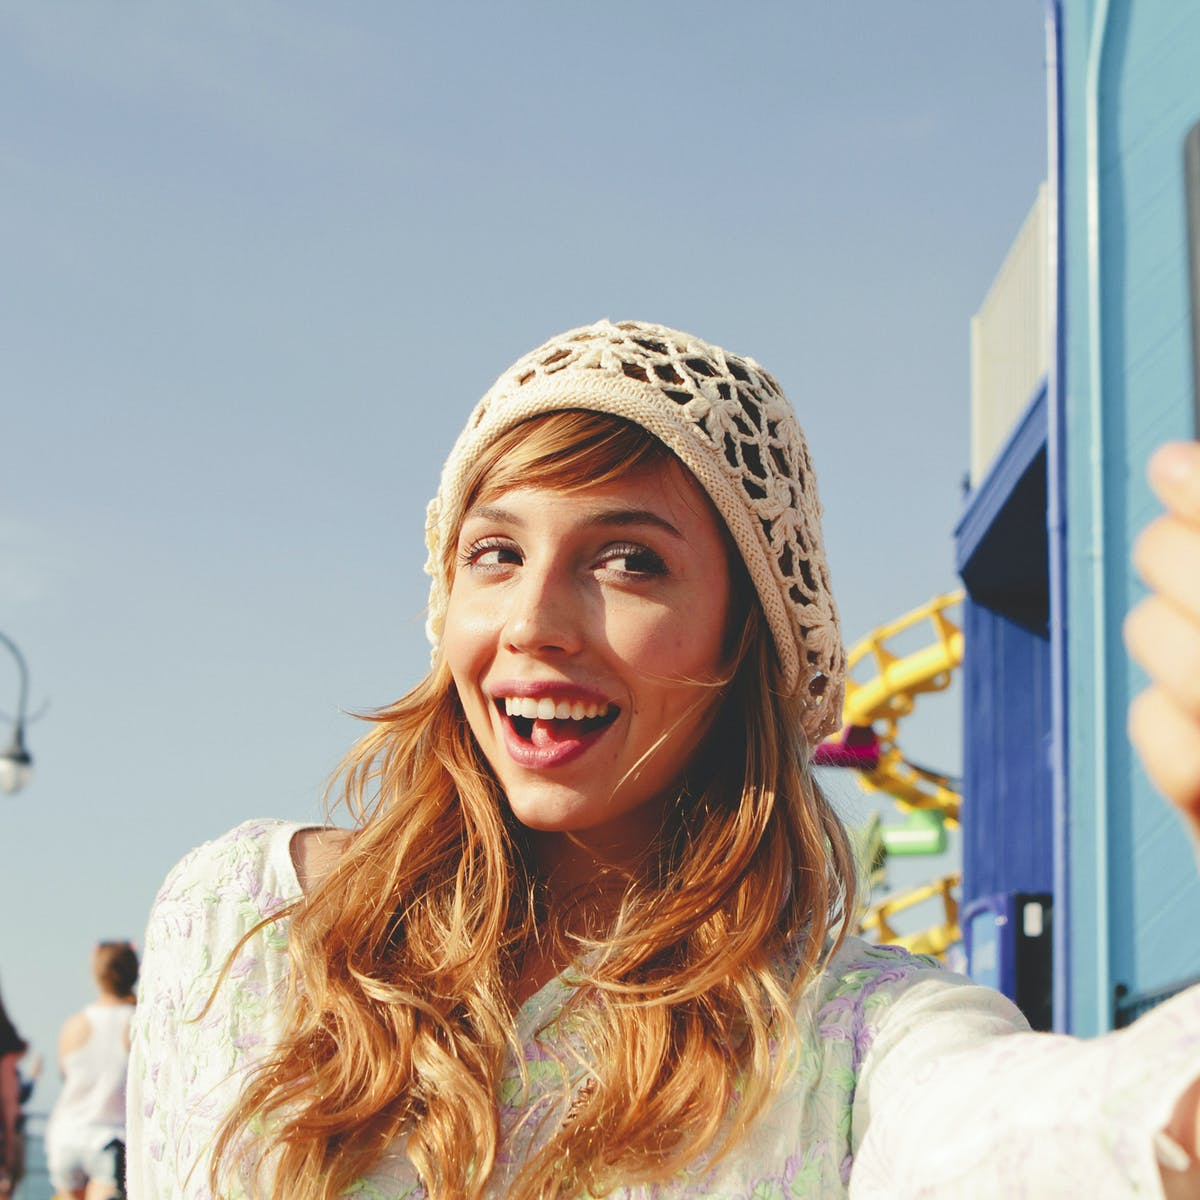 Warning: your selfie obsession could ruin your relationship